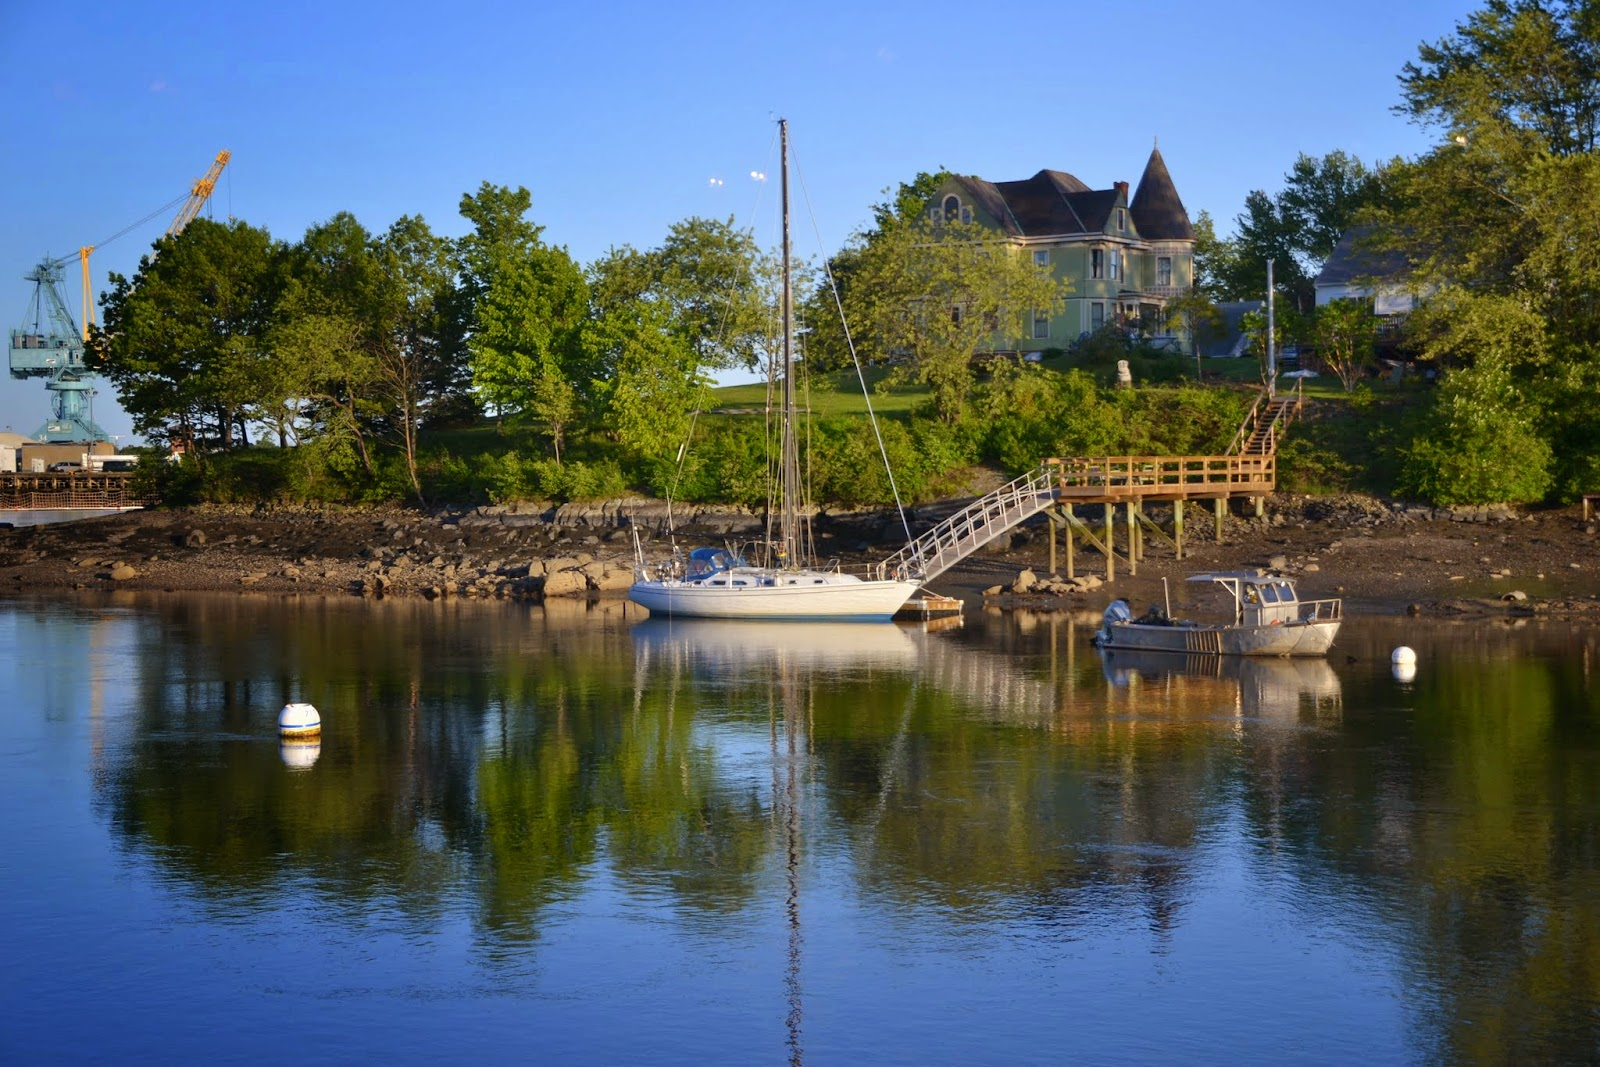 Much Ado About Somethin: Day trip to Kennebunkport